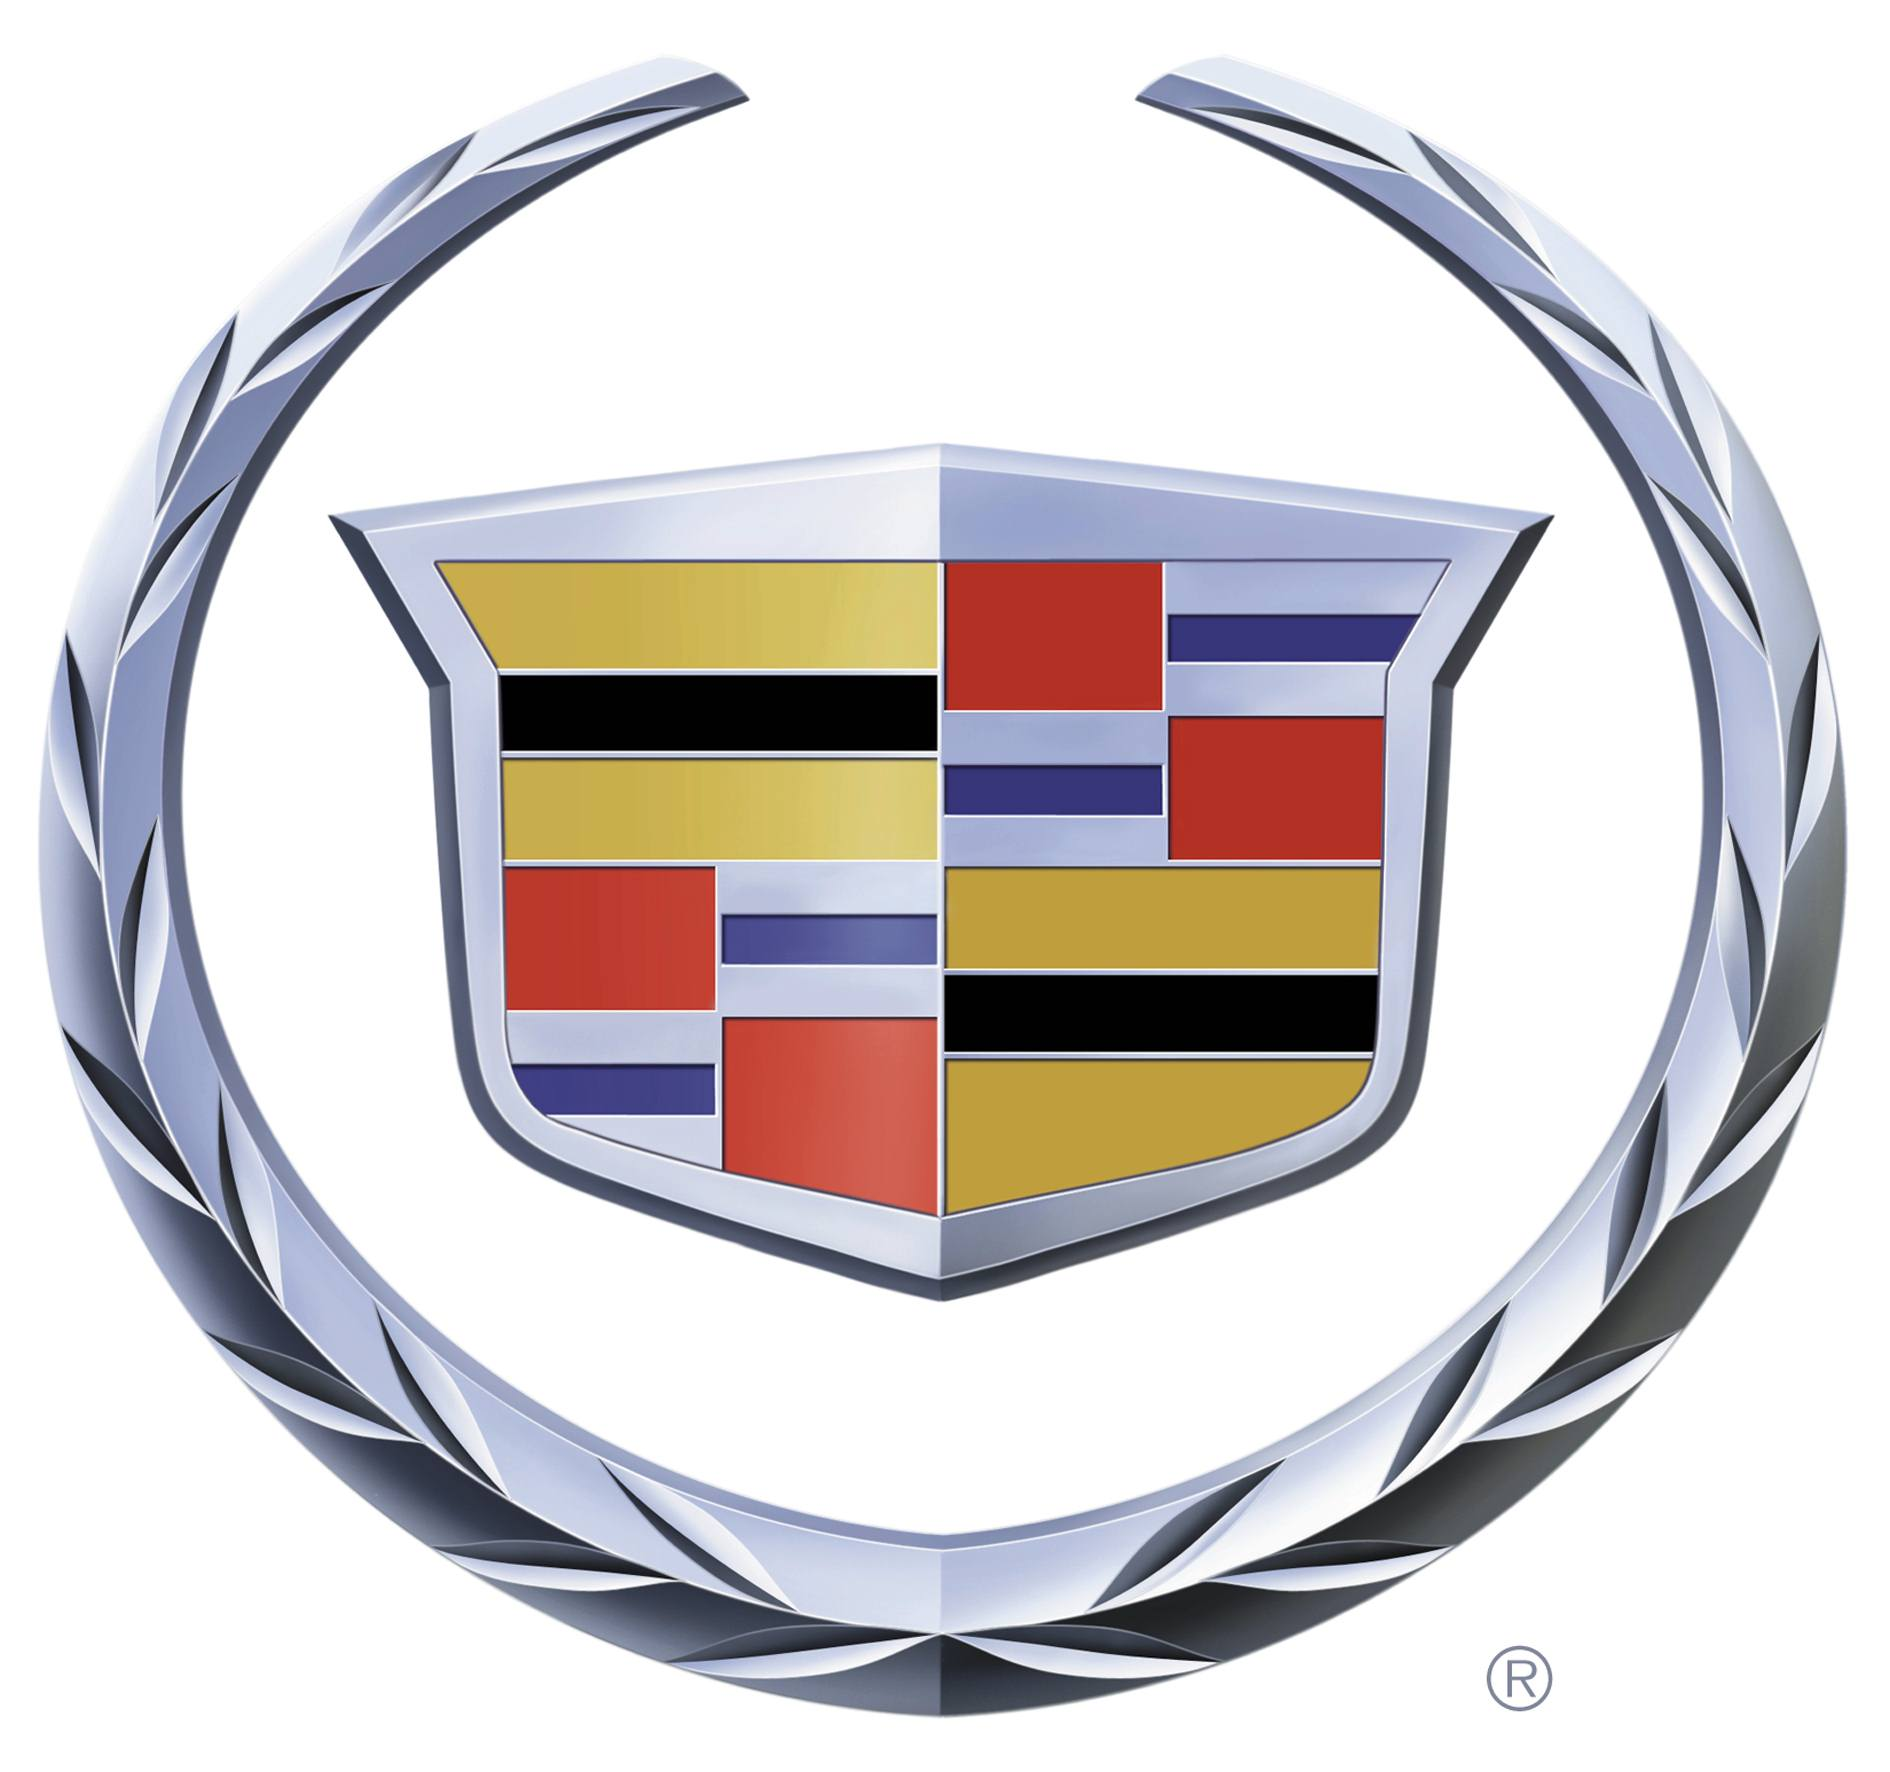 Where can I get High resolution Cadillac and V logos?